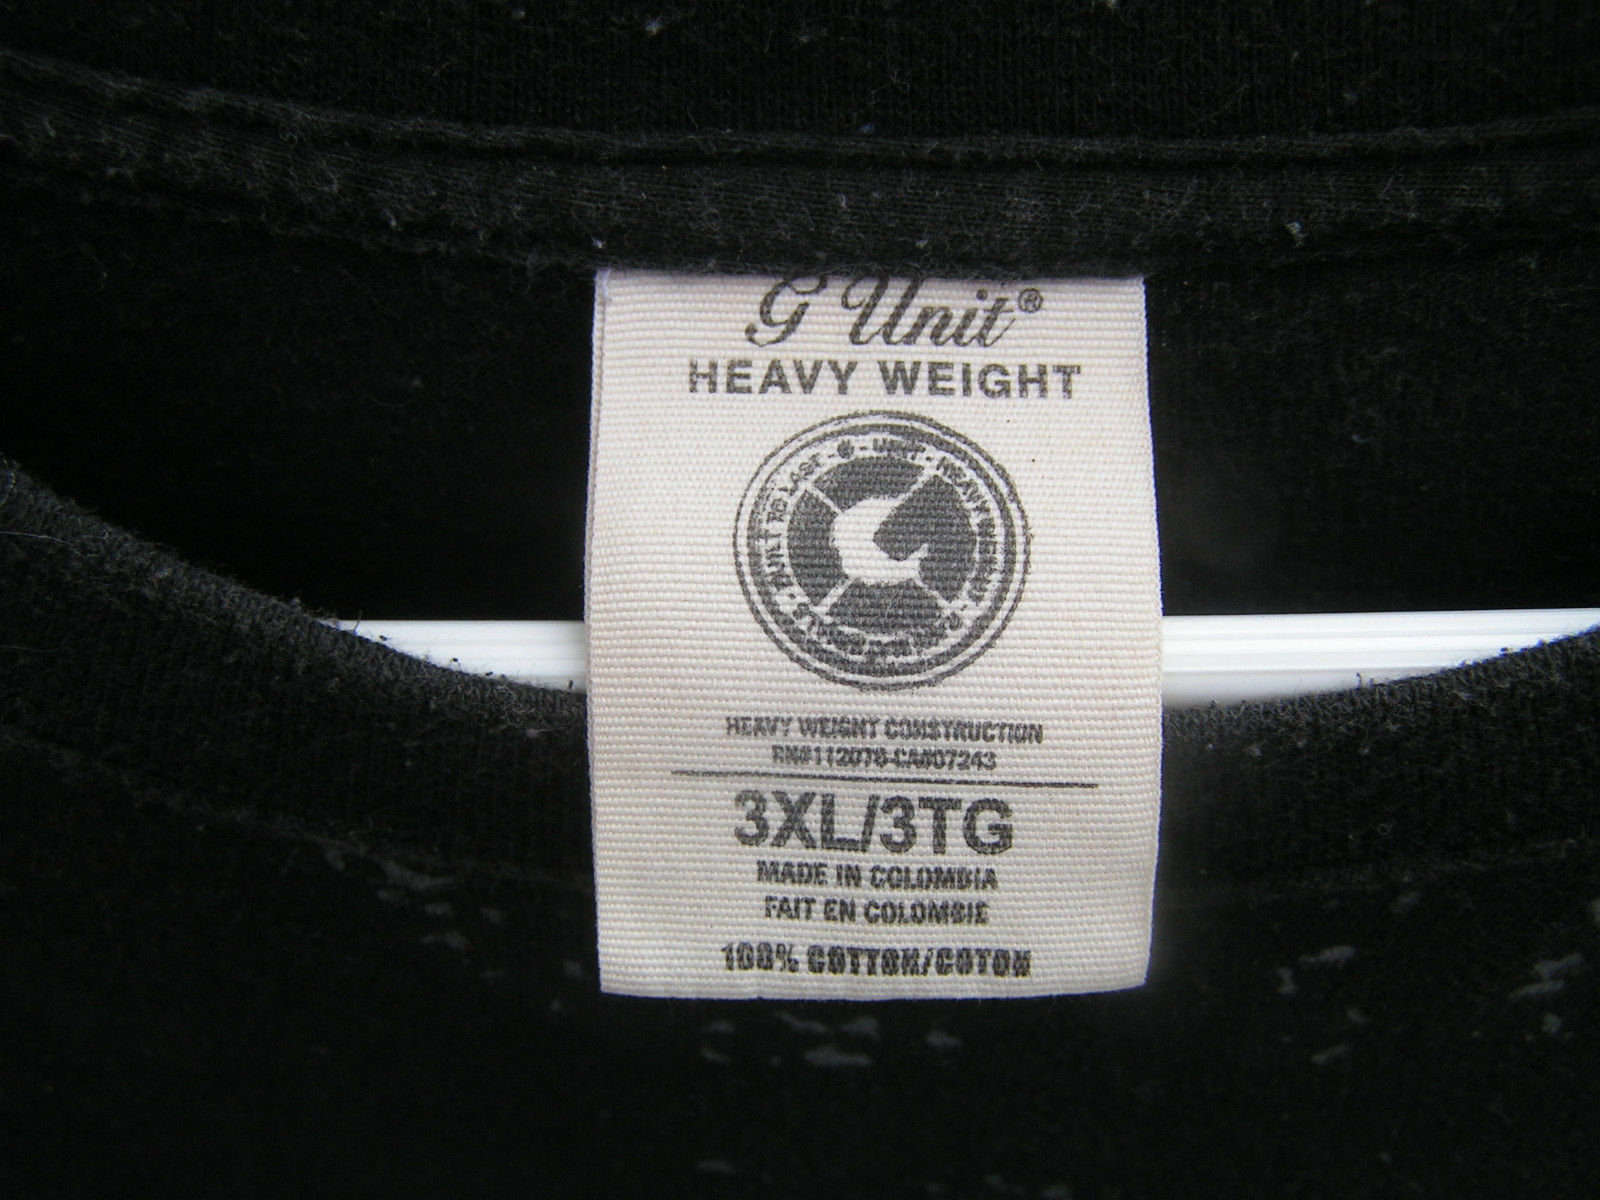 G Unit Heavy Weight # 173-001333 Black Shirt Men's 3XL Shirt - $11.75